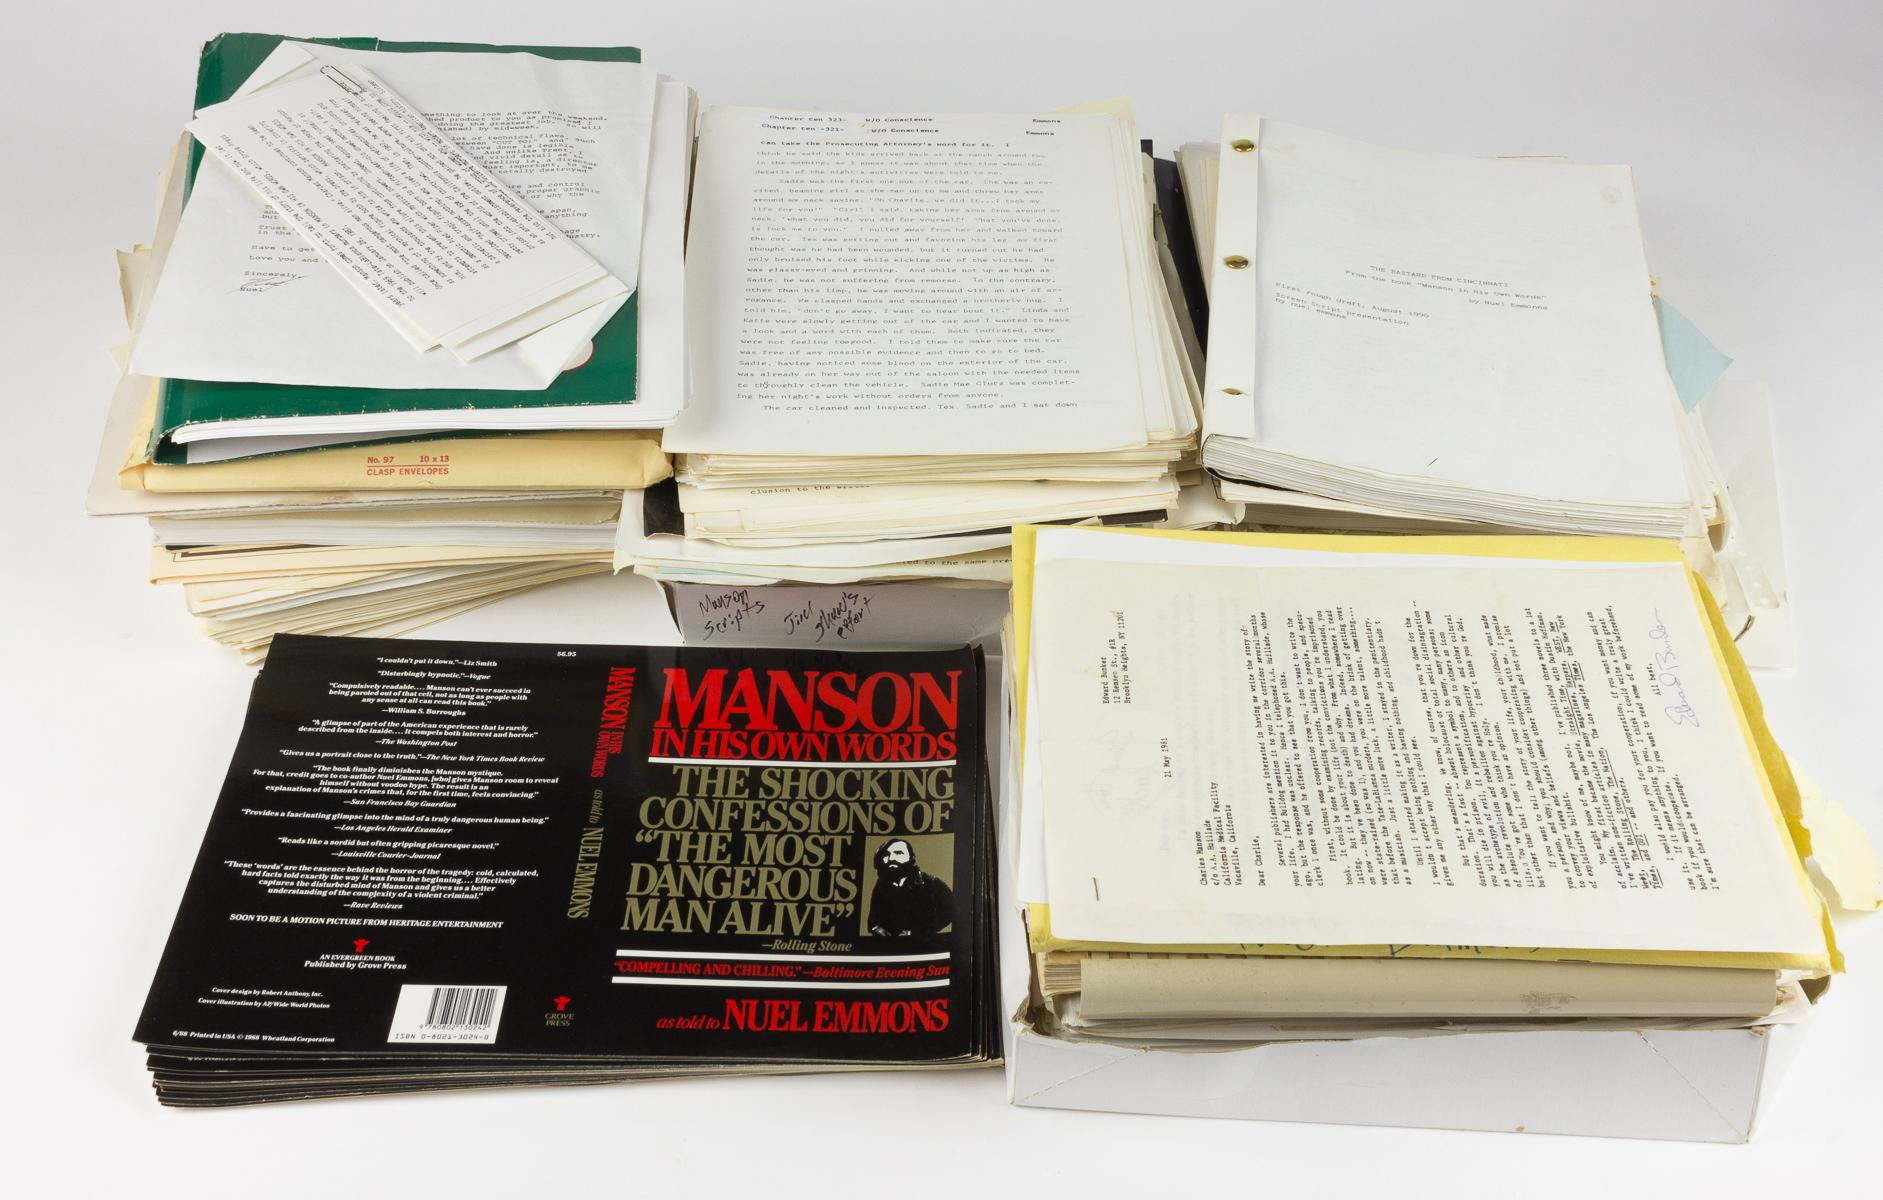 CHARLES MANSON AUTOBIOGRAPHY FILE OF NUEL EMMONS